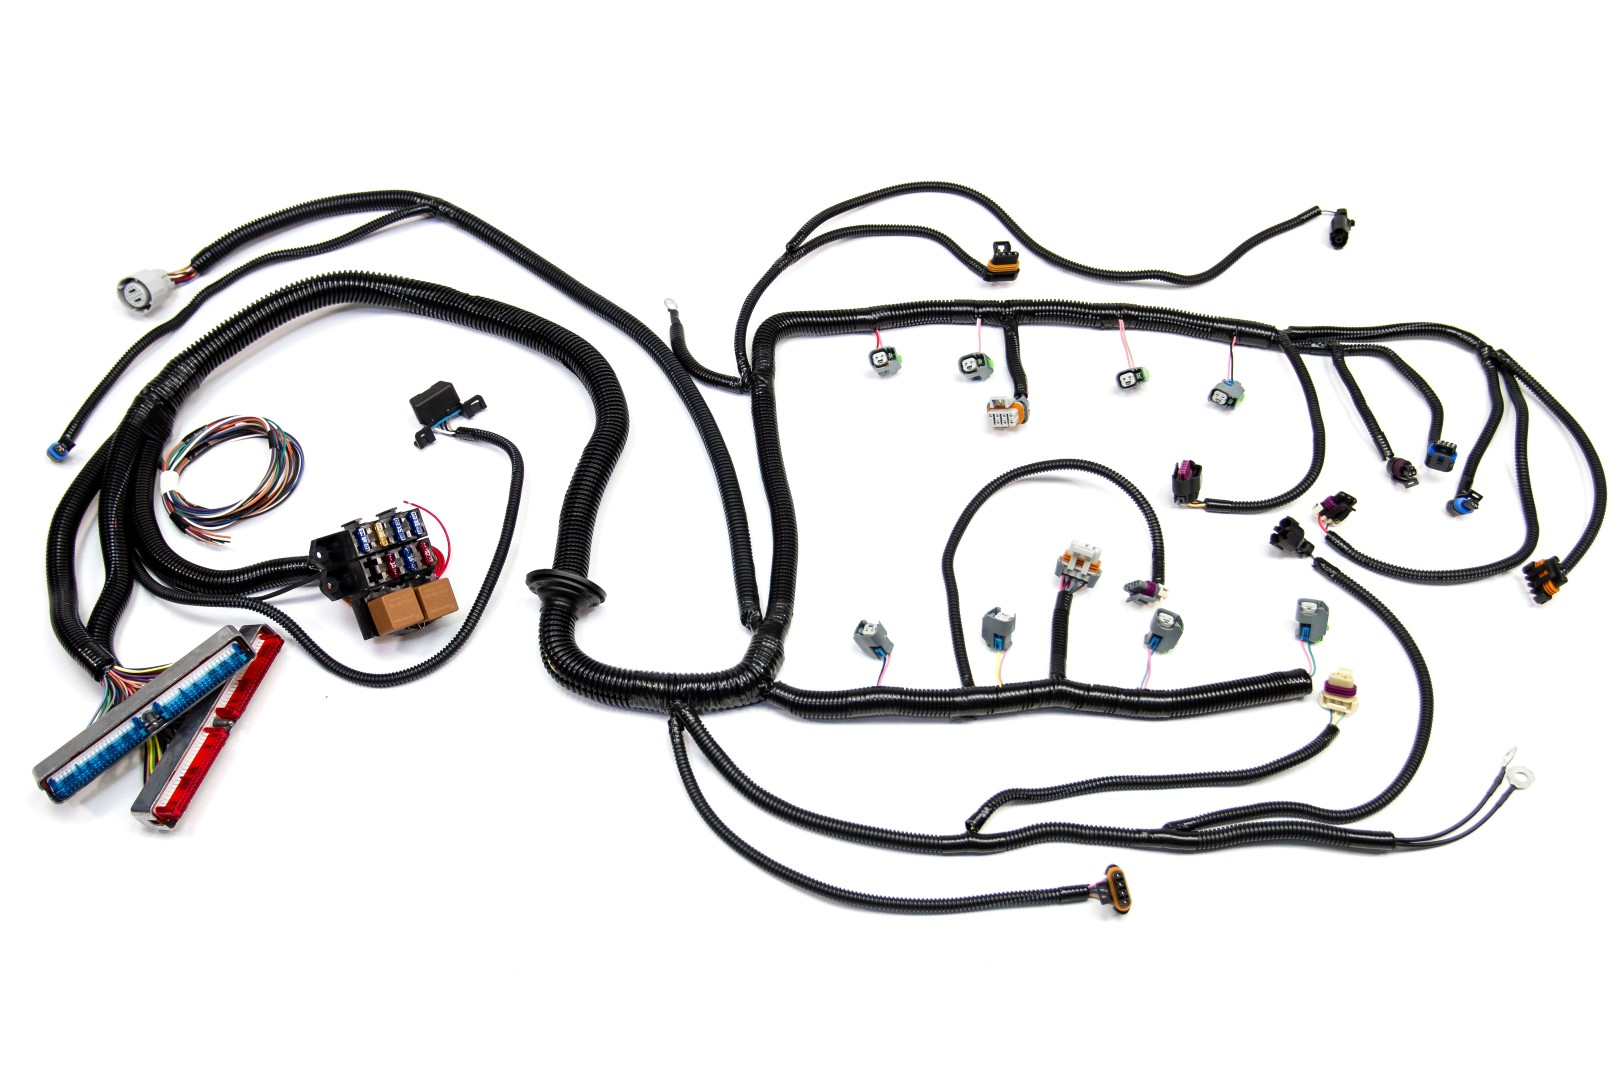 13 gm wiring harness 13 gm wiring harness wiring diagram  13 gm wiring harness wiring diagram